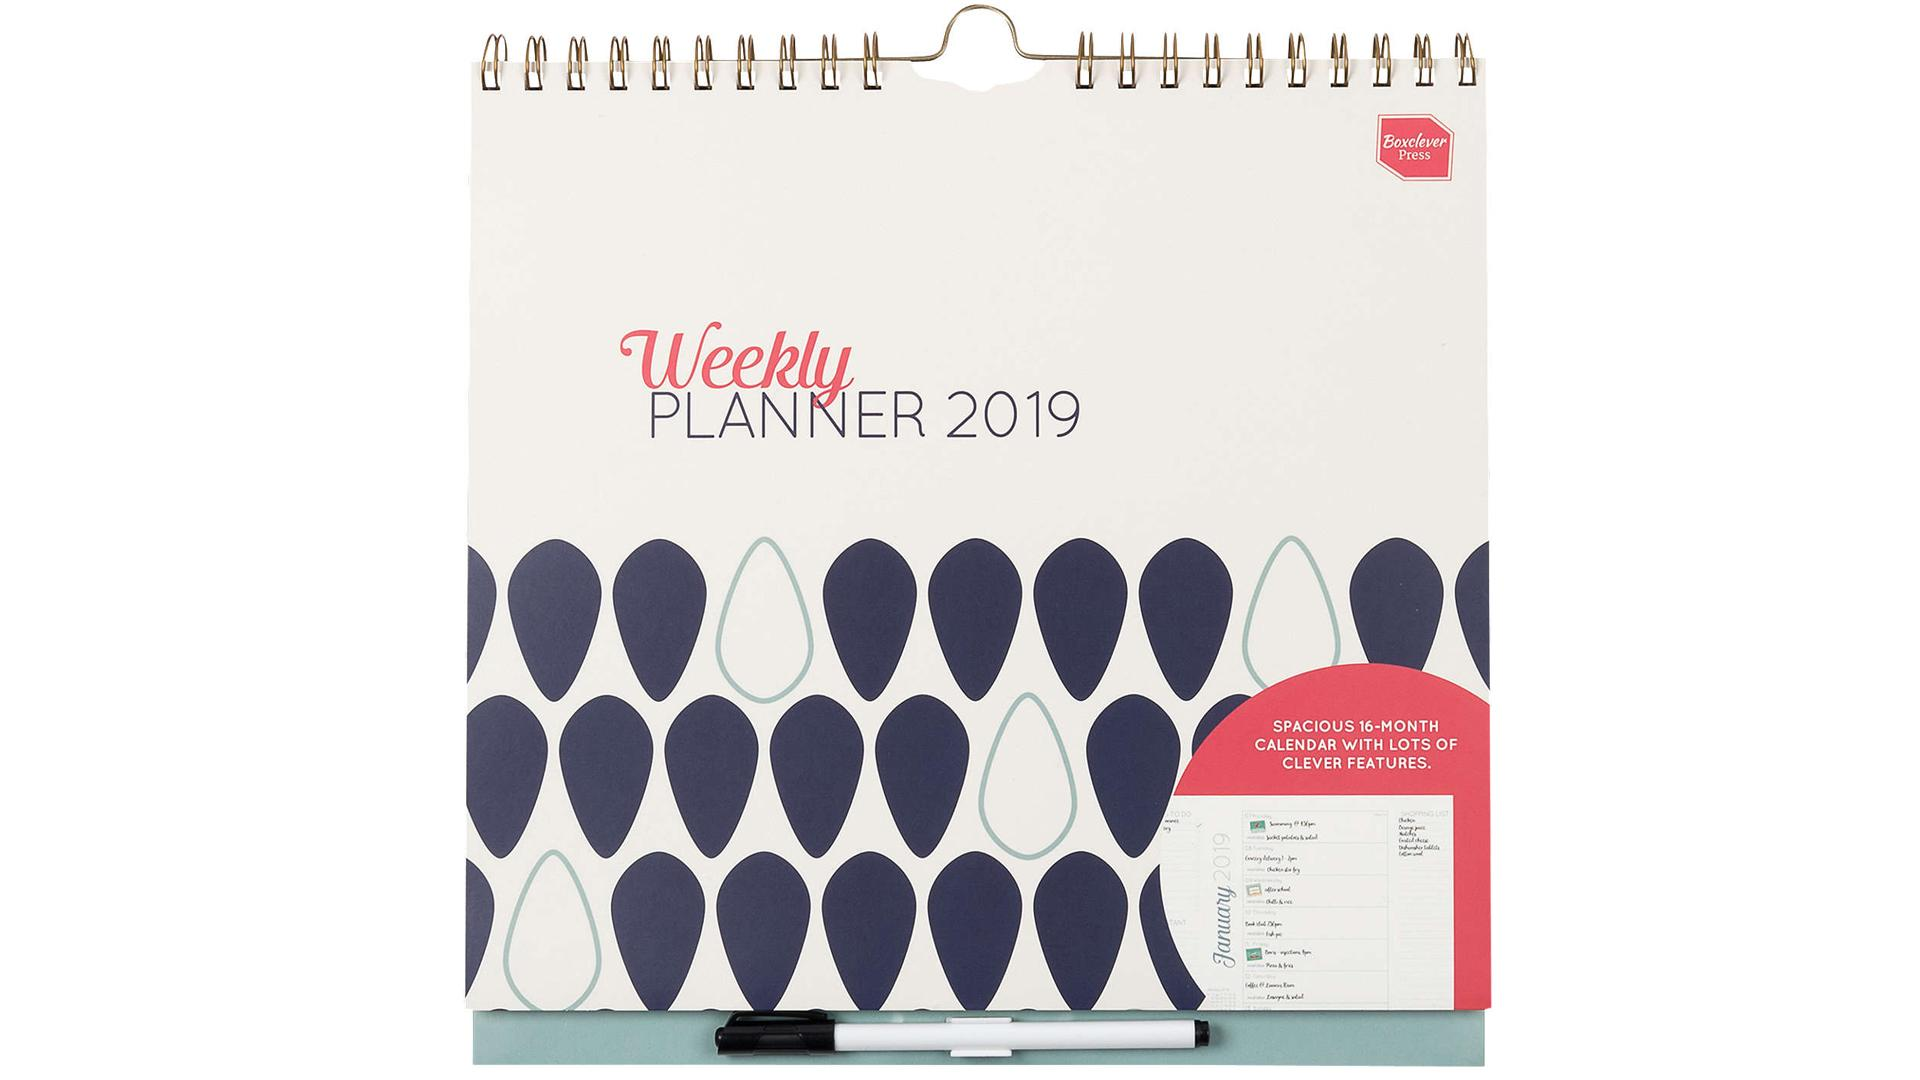 Boxclever Press 2019 Weekly Planner